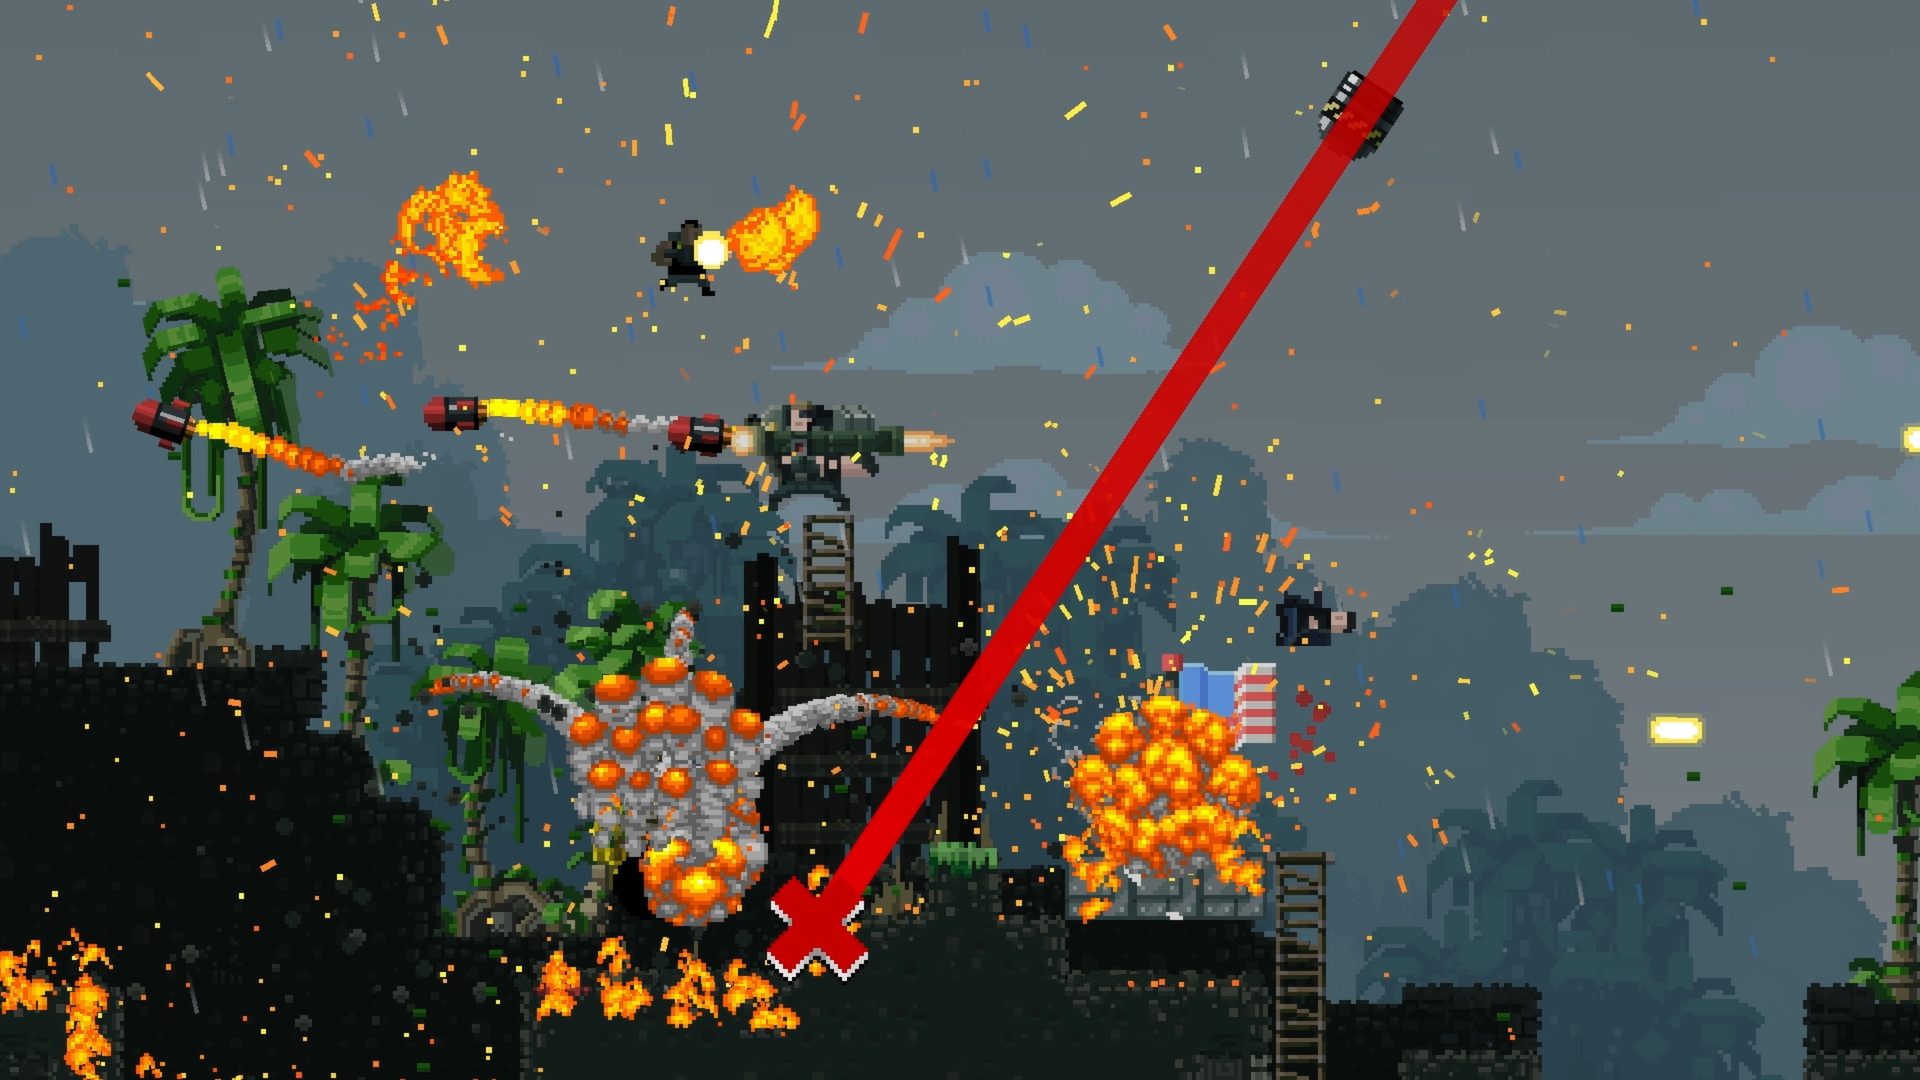 broforce 0405 c